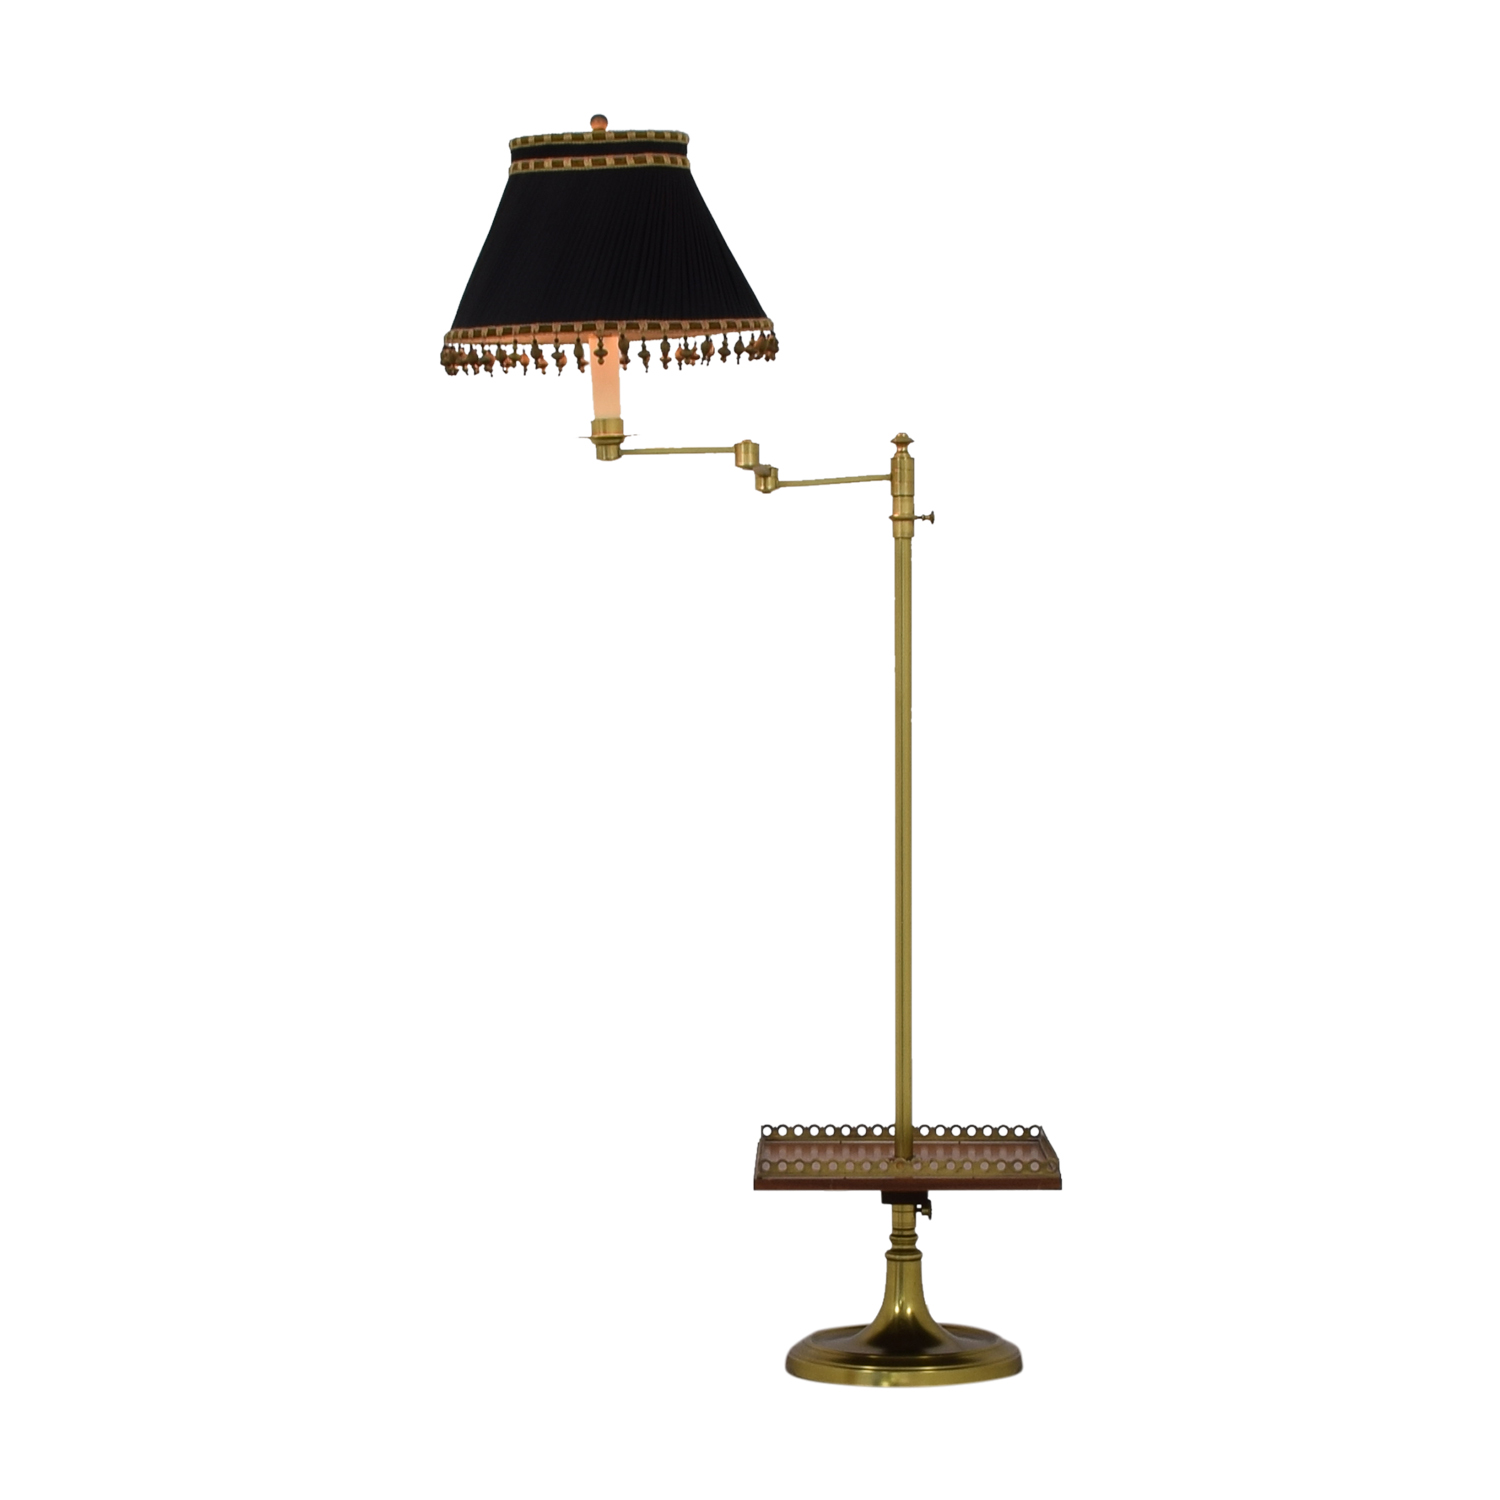 Brass Table Lamp with Tray used